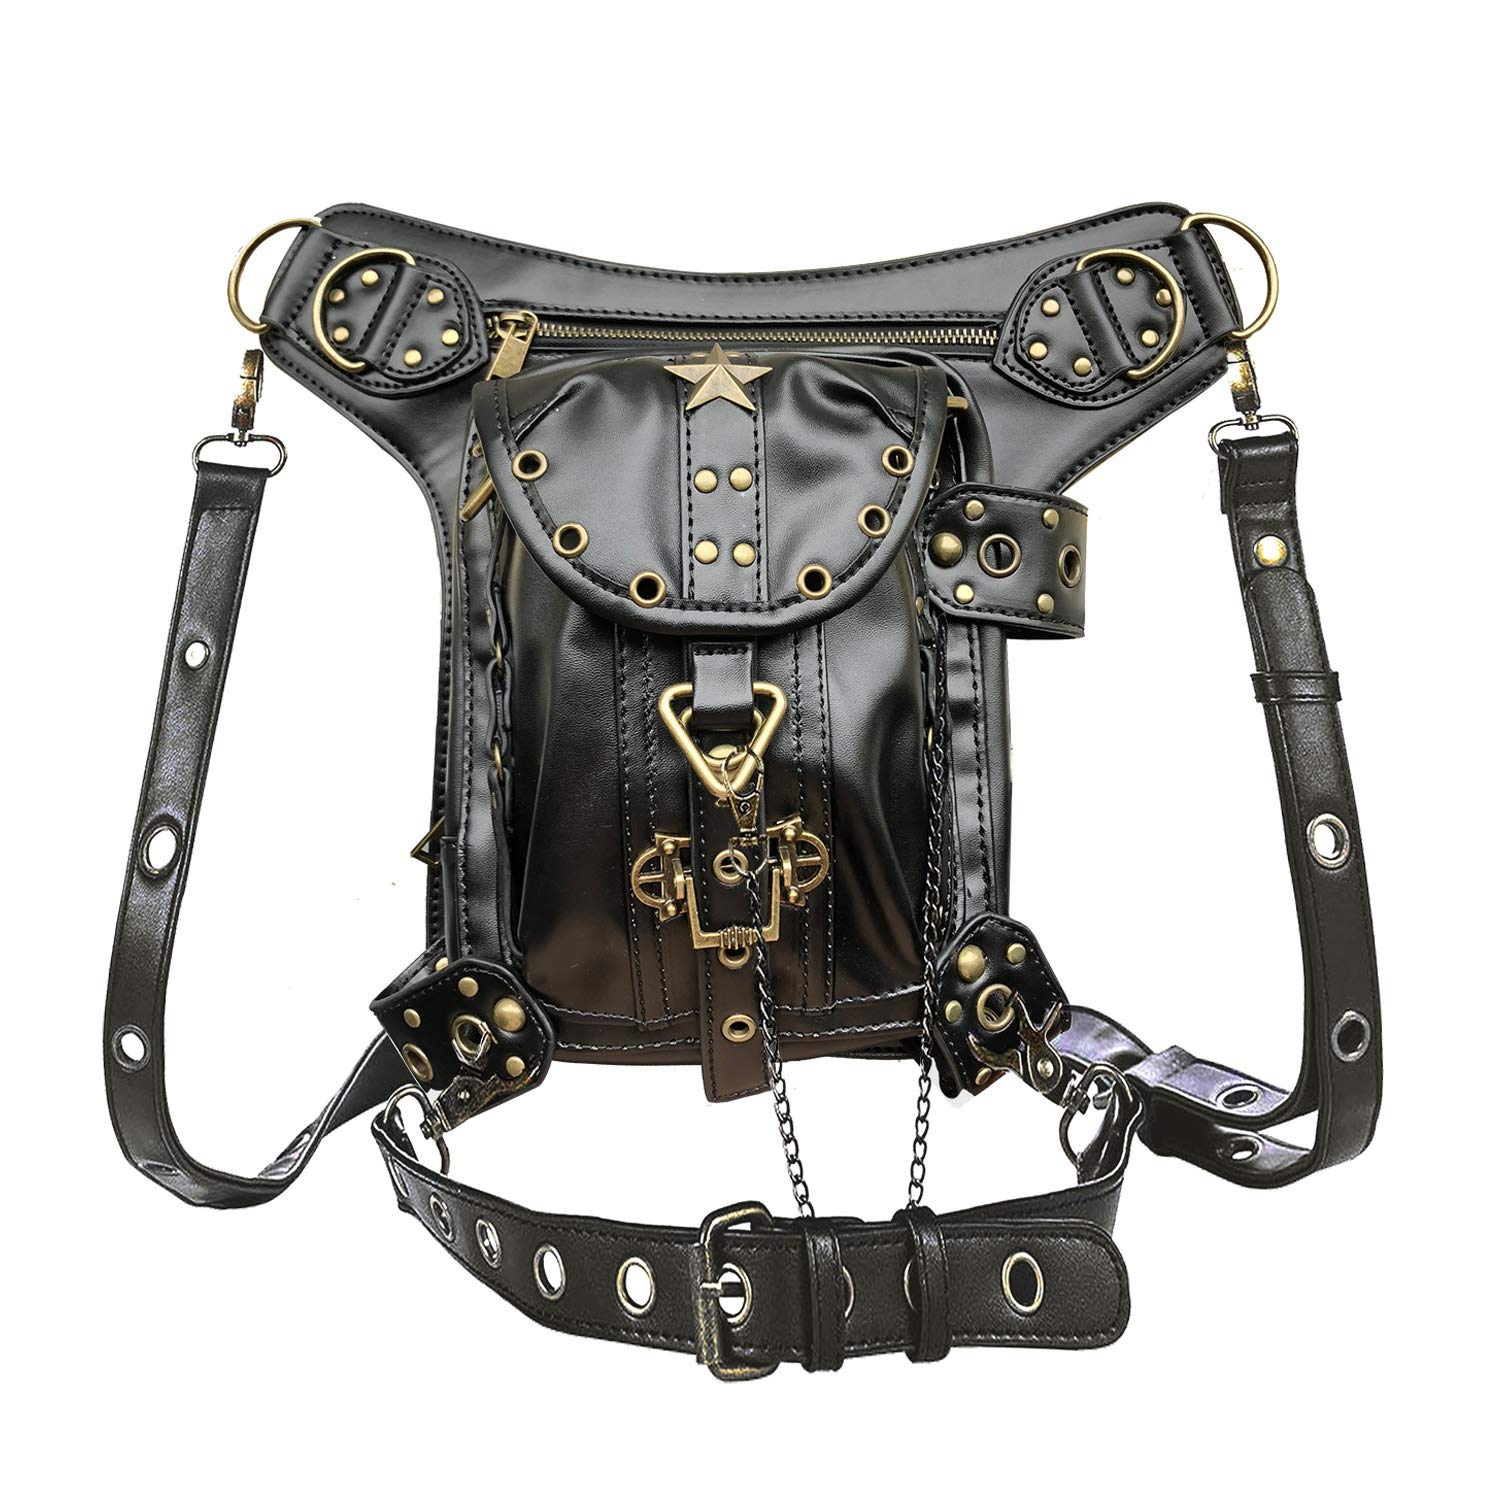 Valentoria Mens Womens Steampunk Punk Waistbag Shoulder Bag Crossbody Bag Thigh Leg Hip Holster Purse Belt Pouch Travel Chain Bags Leather Hiking Packs Handbag Messenger Bags easygogo